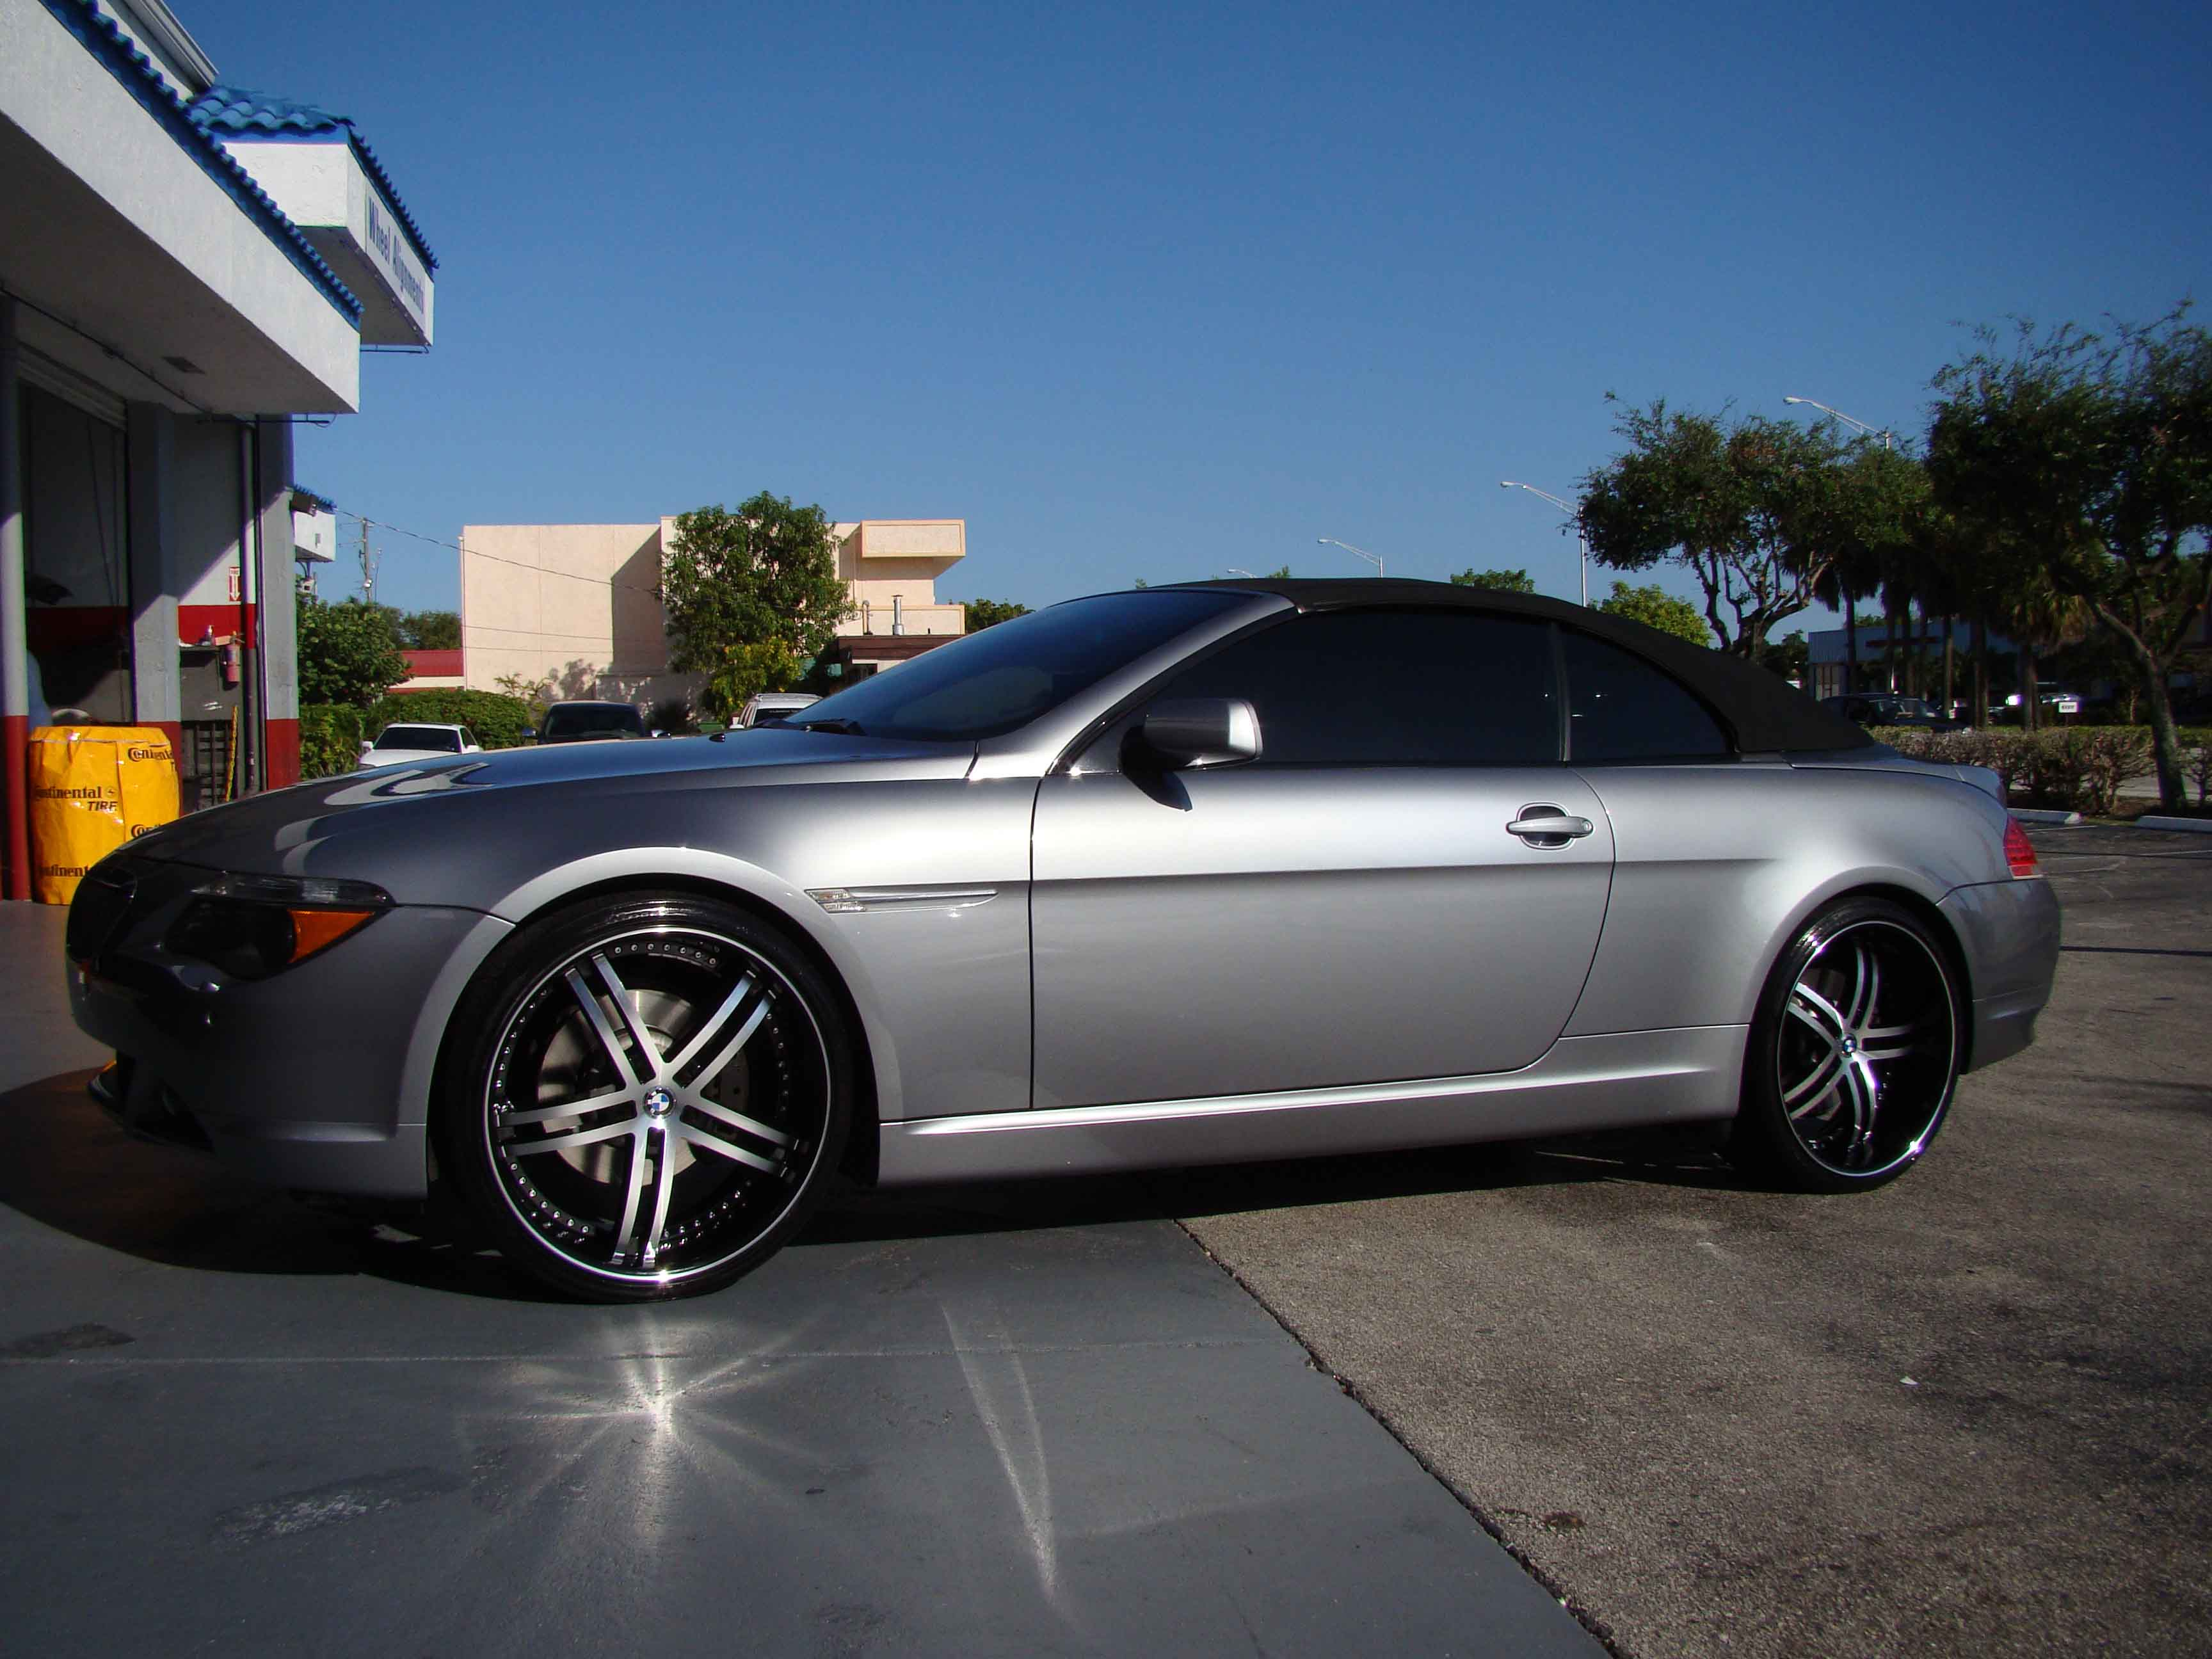 Car Bmw 6 Series Convertible On Status S816 Knight 5 Wheels